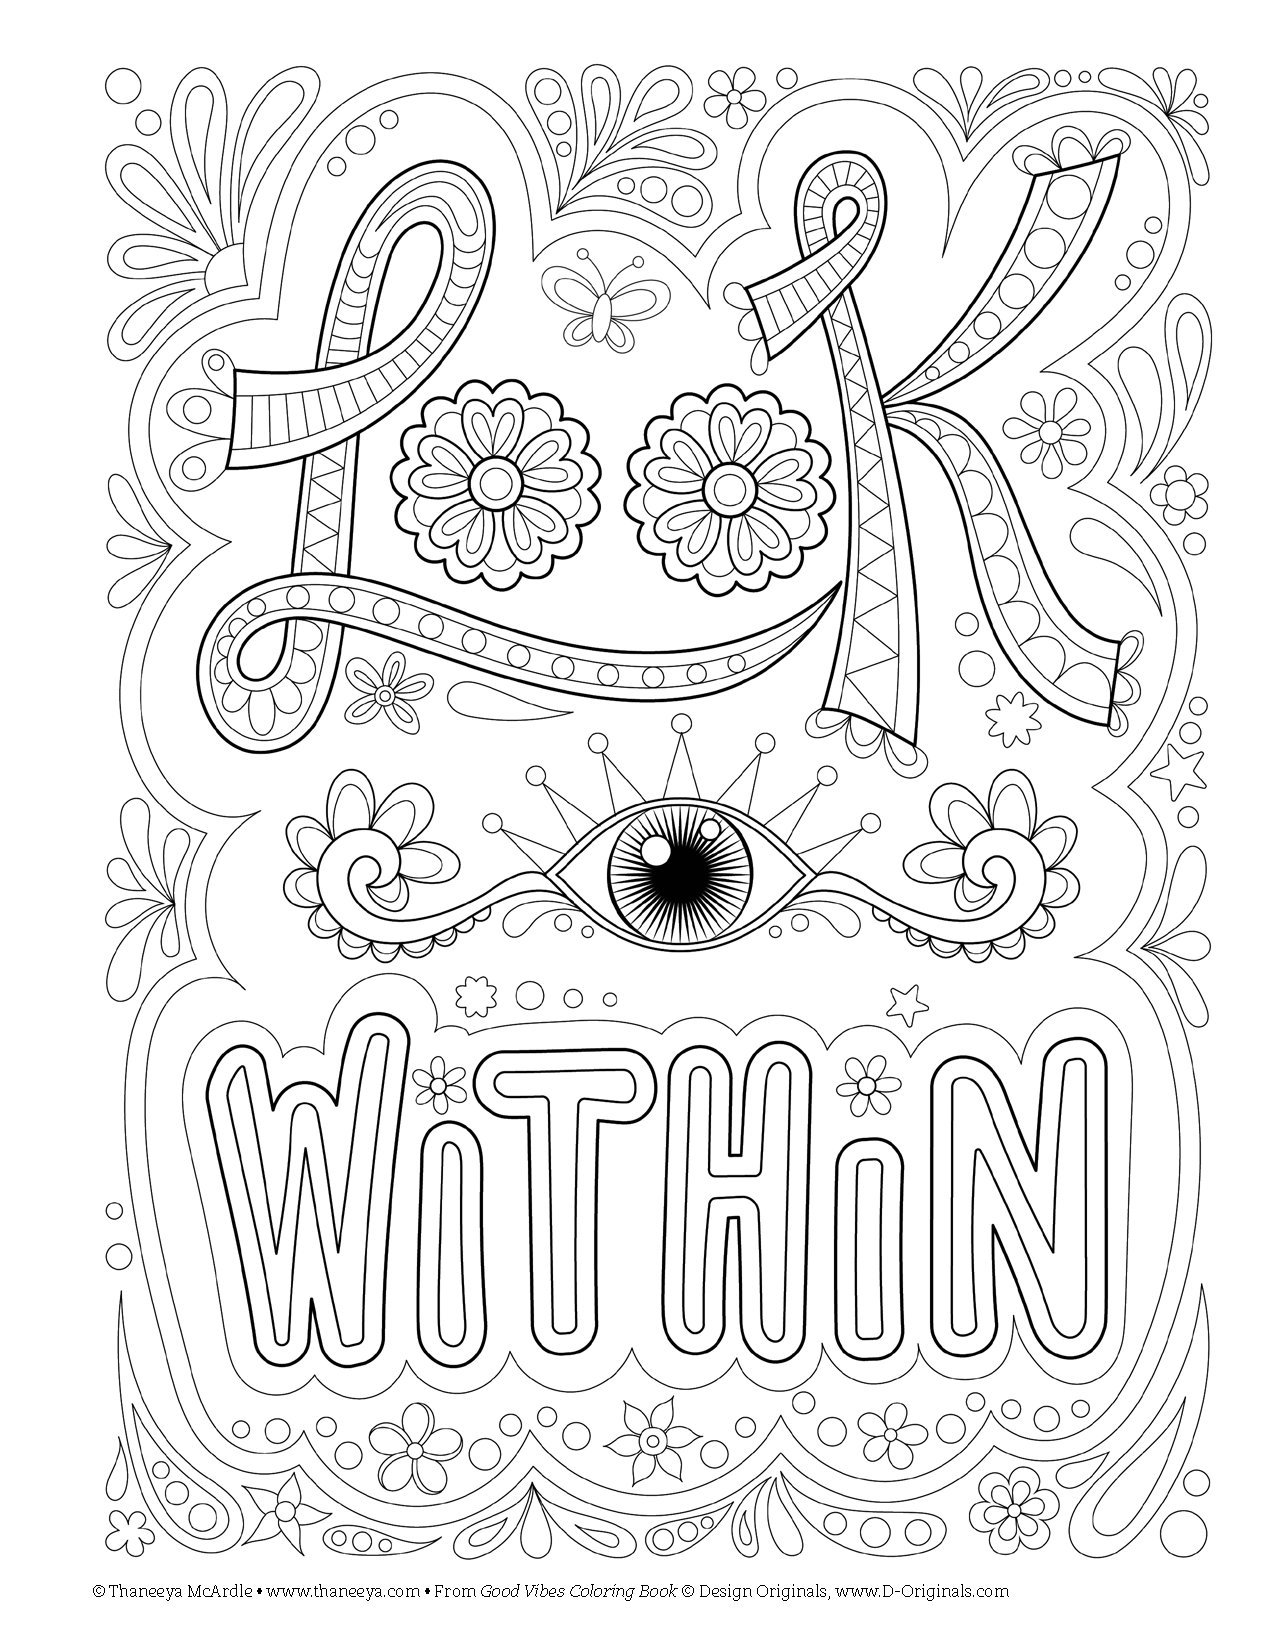 Amazon.com: Good Vibes Coloring Book (Coloring is Fun) (Design ...